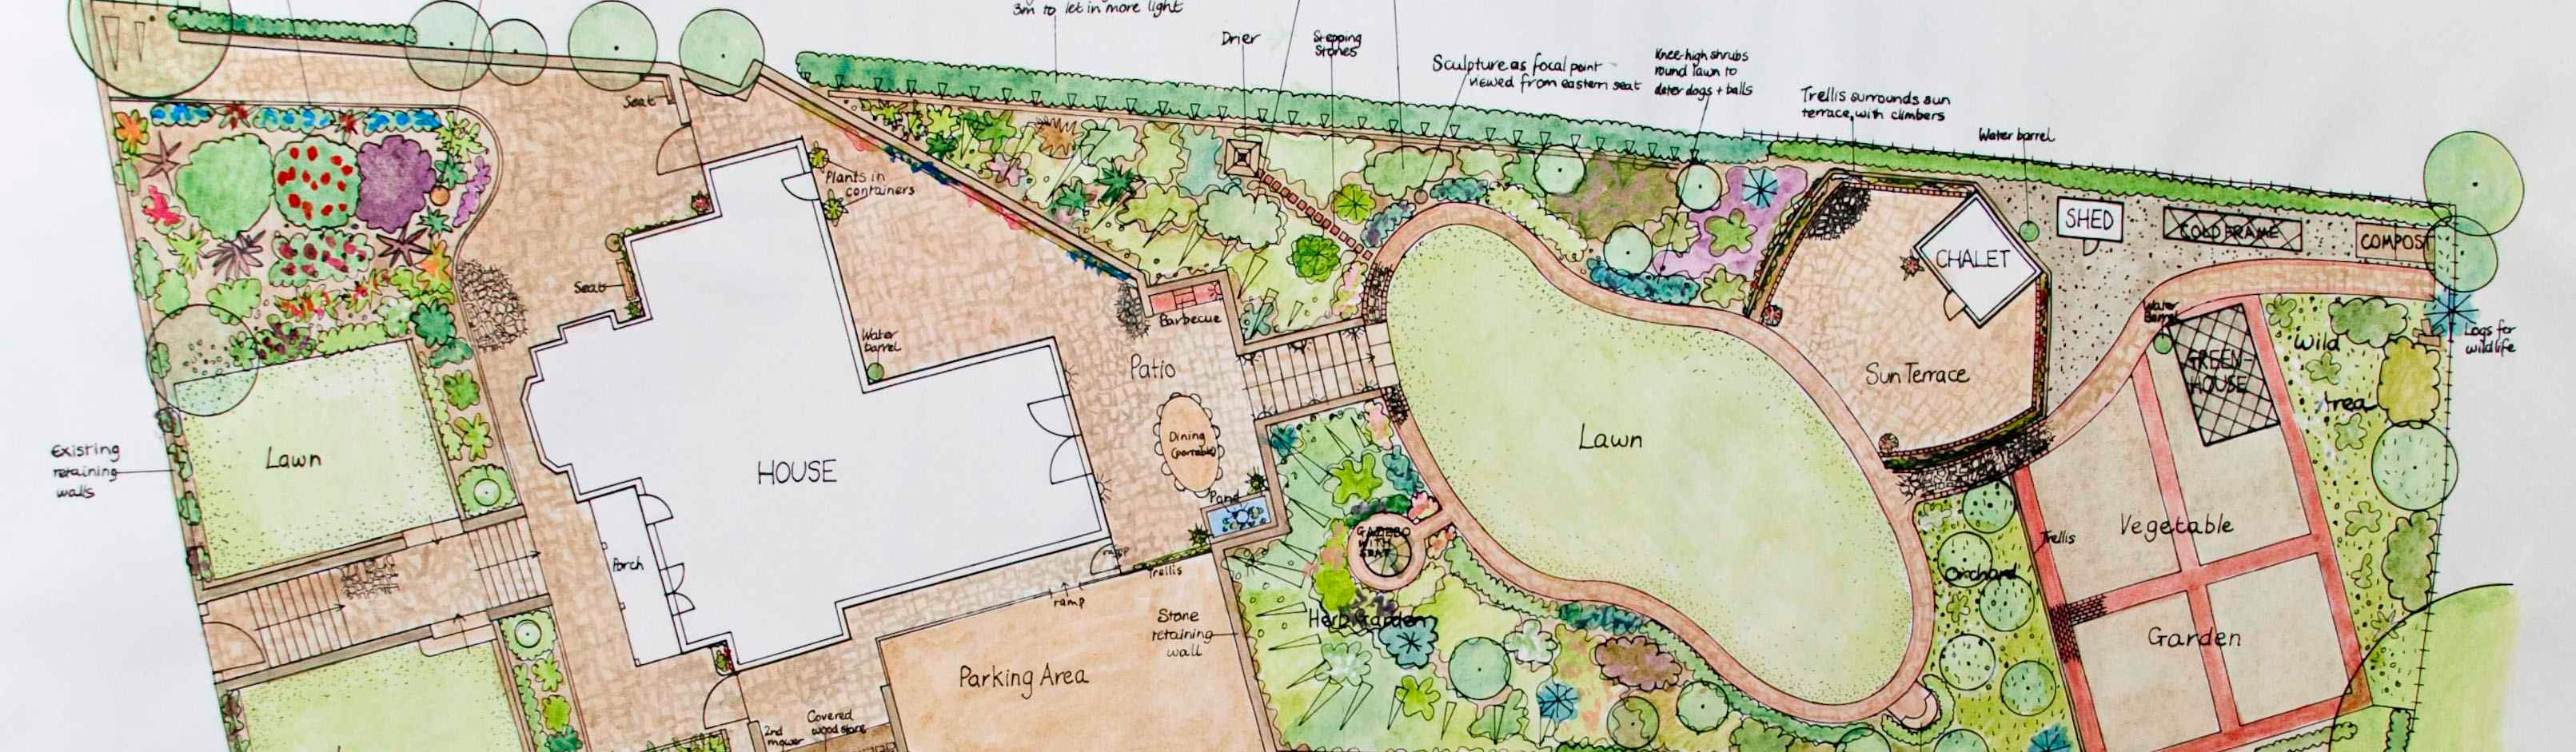 Jane Harries Garden Designs